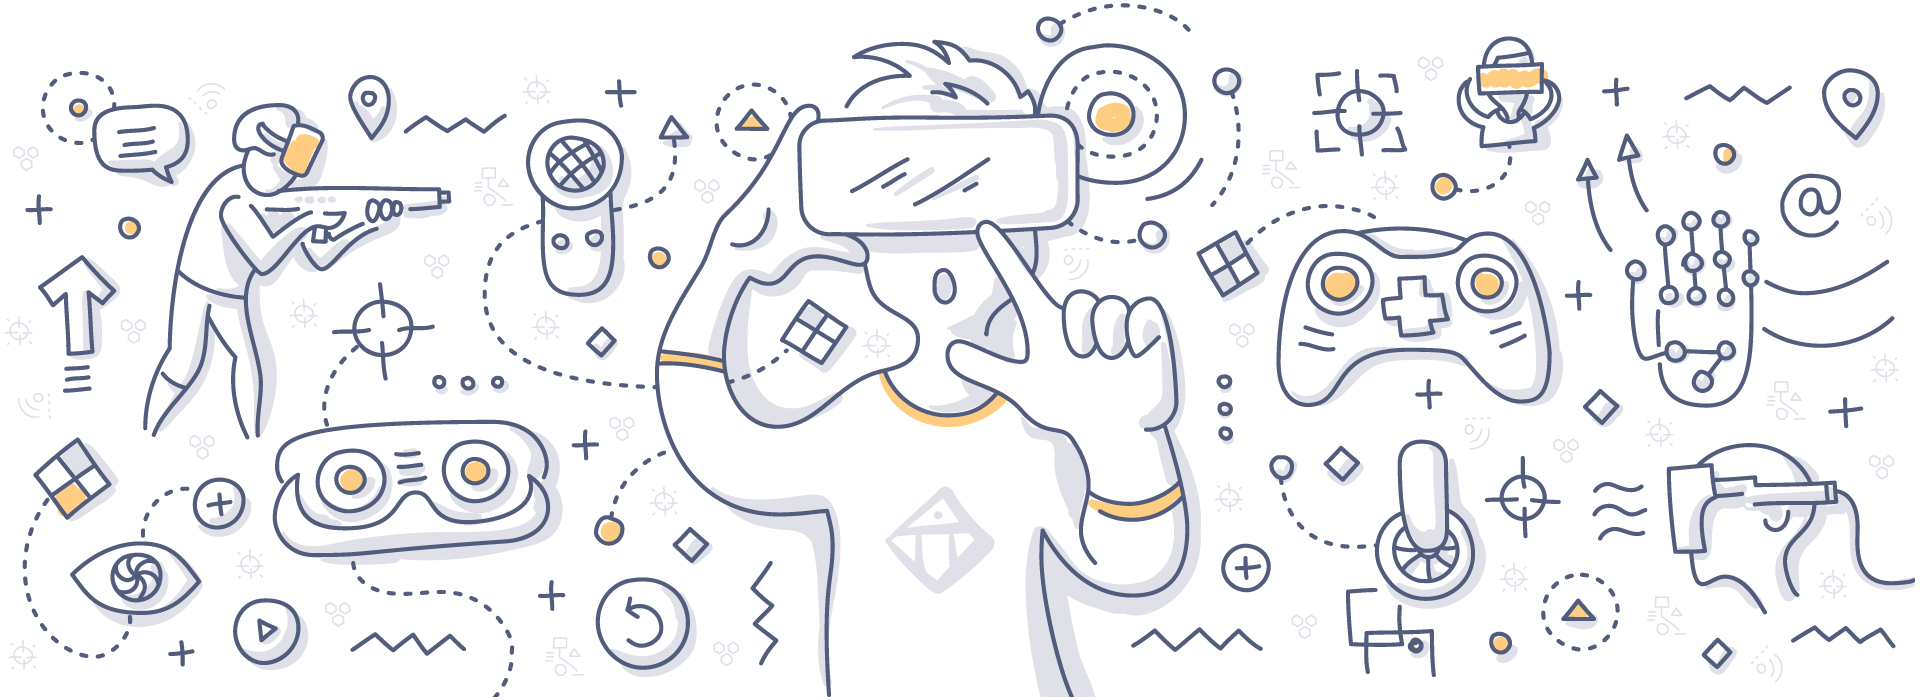 Doodle of virtual reality gaming